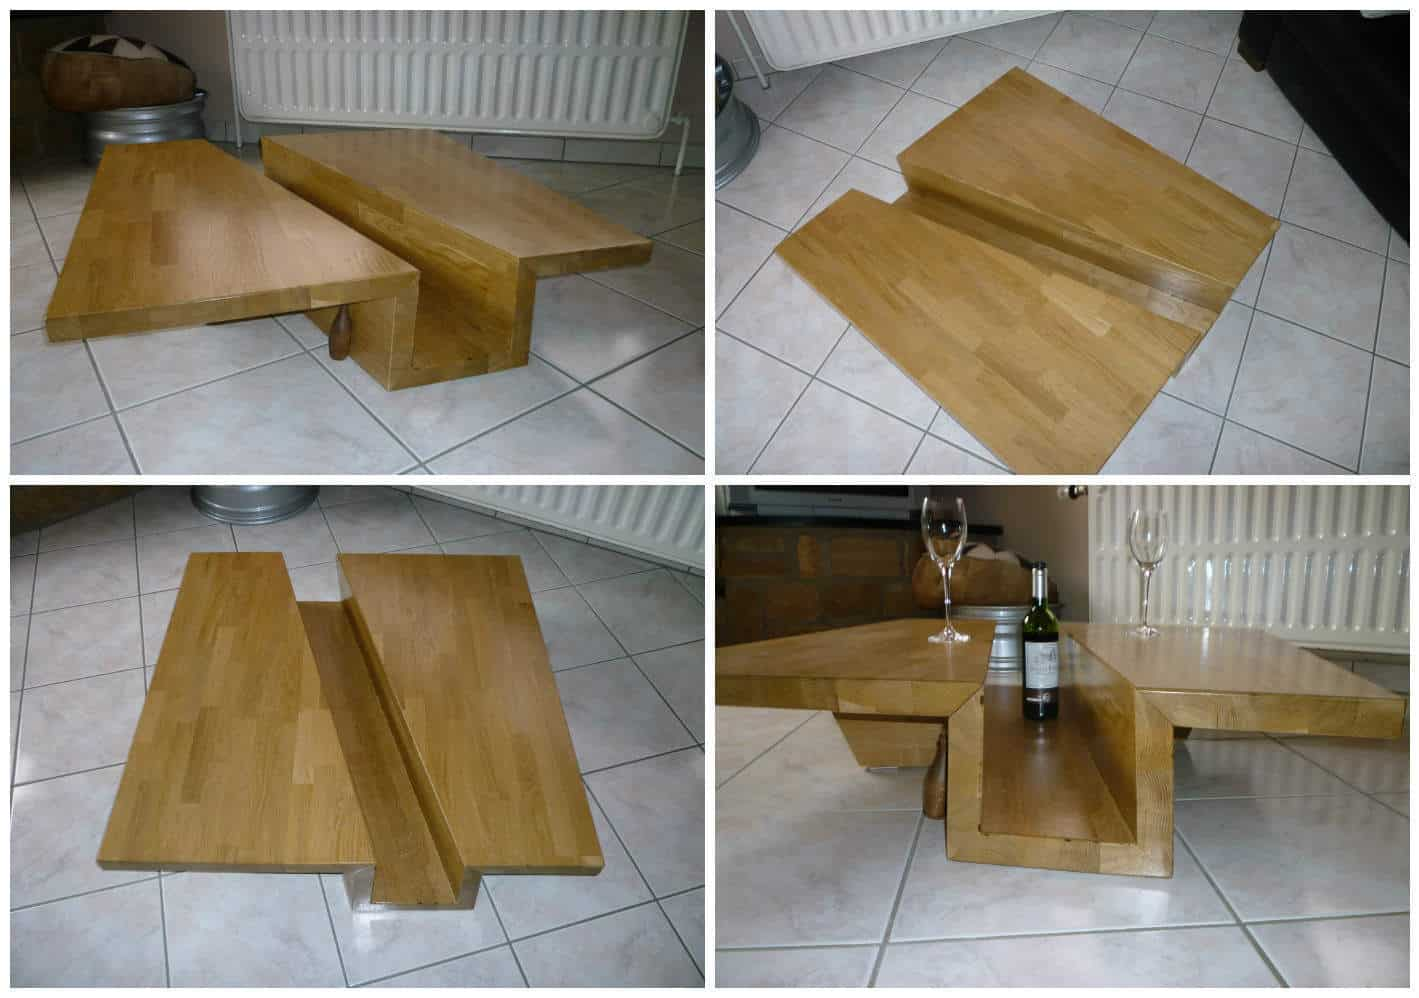 Table basse ch ne massif lamell coll solid glulam oak for Table basse chene massif